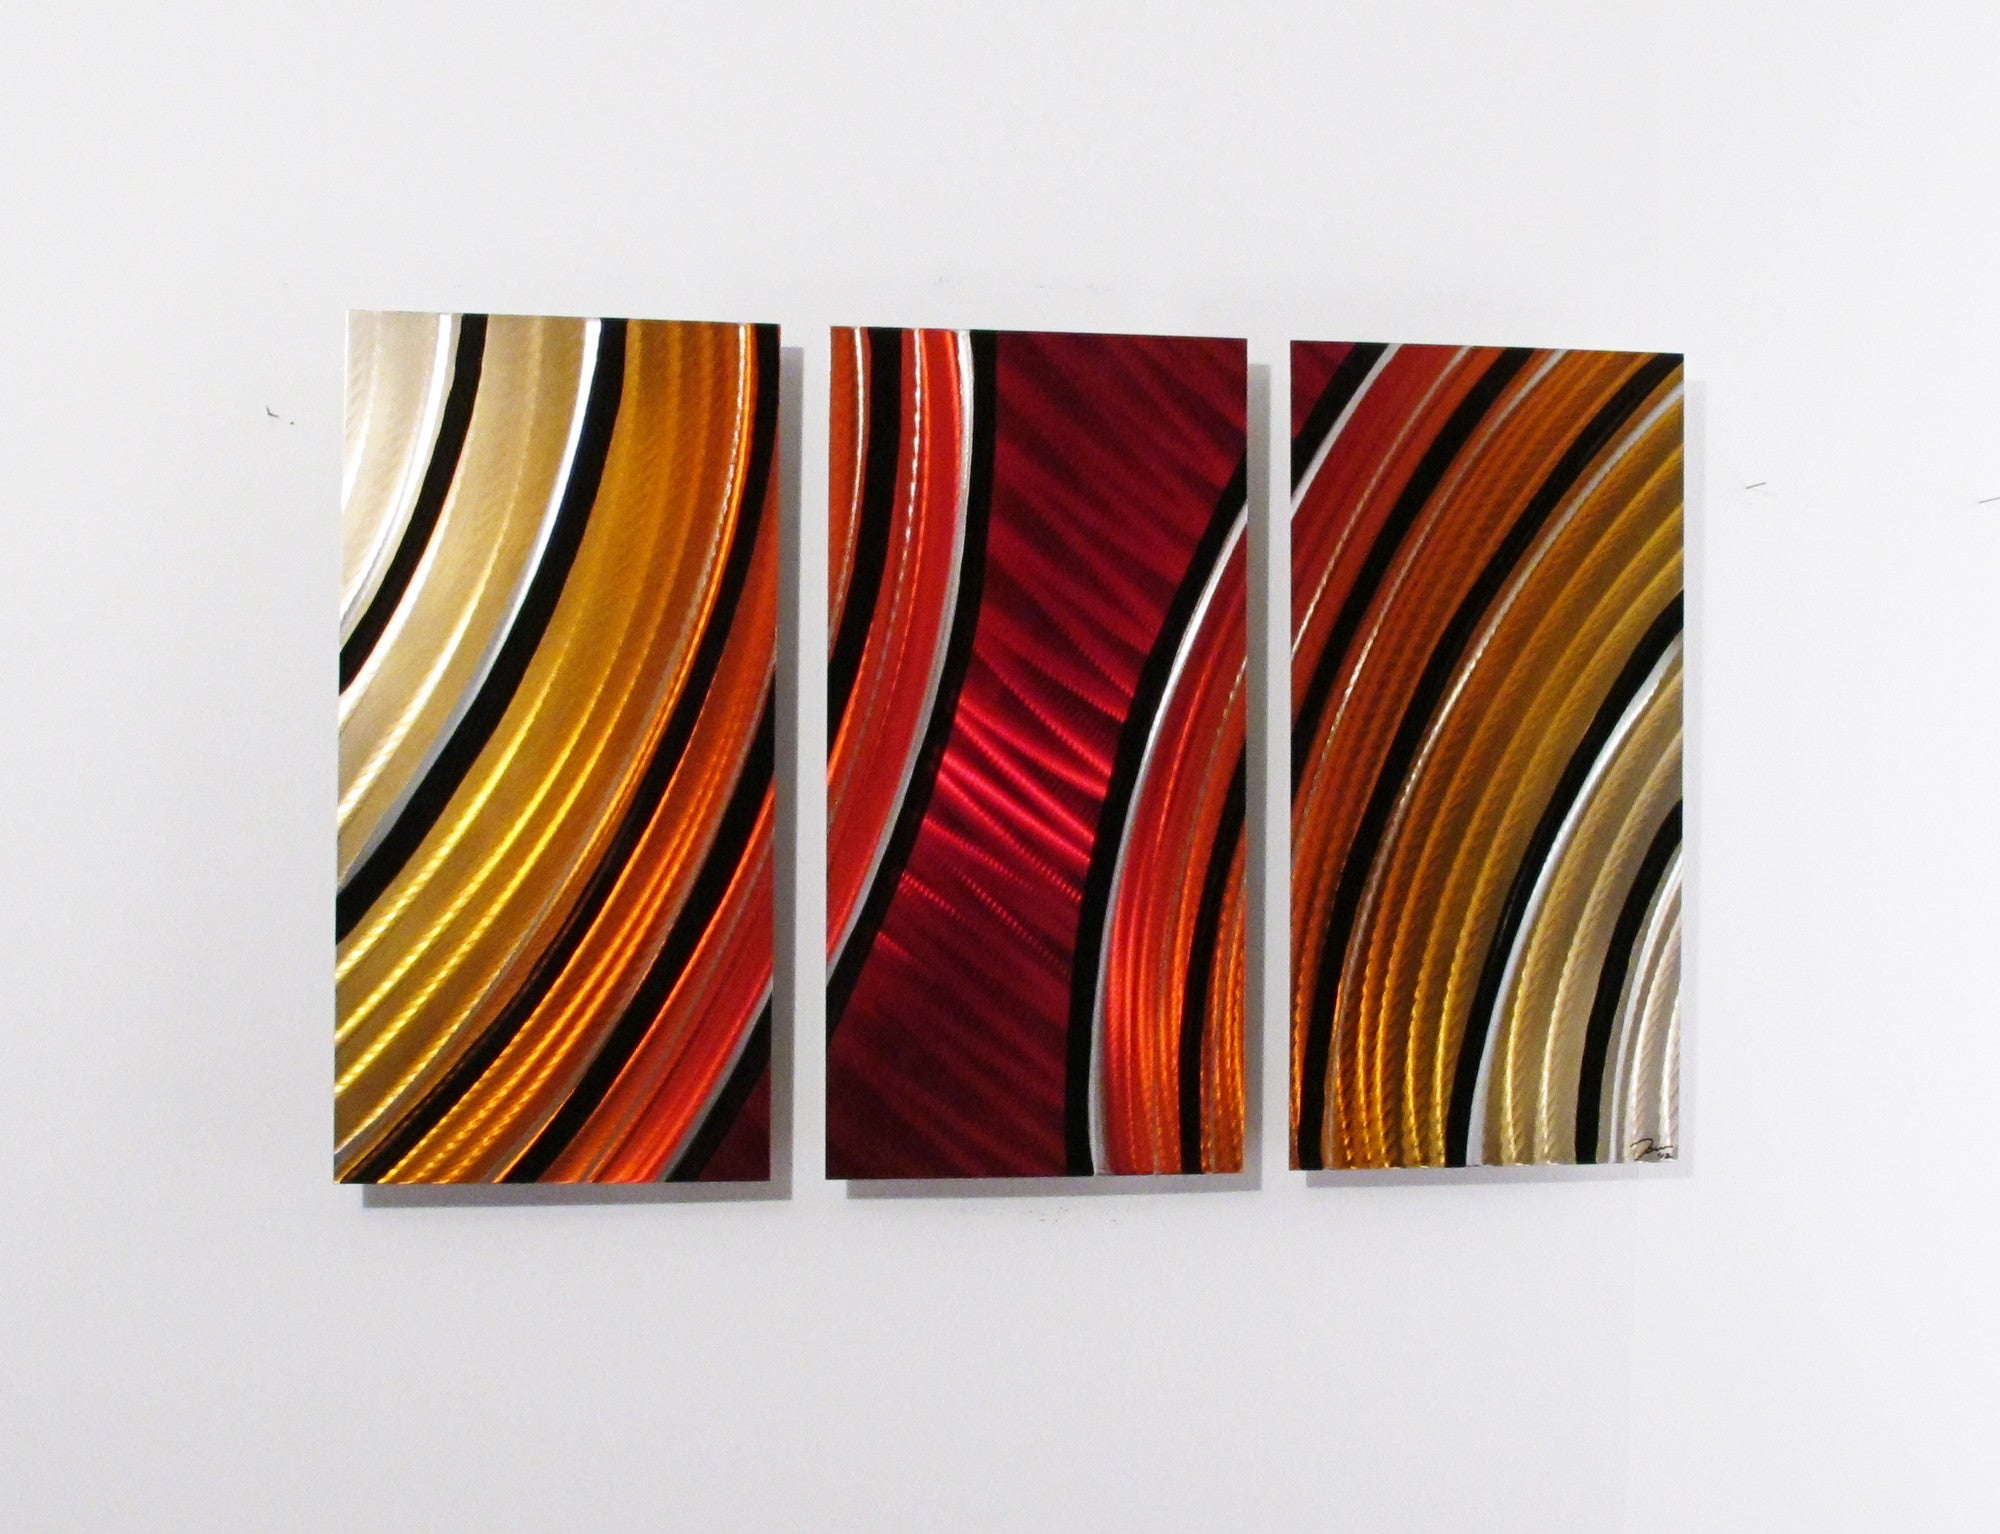 metal wall art  red  dv studio - ap starburst x red  orange aluminum modern abstract metal wallart sculpture